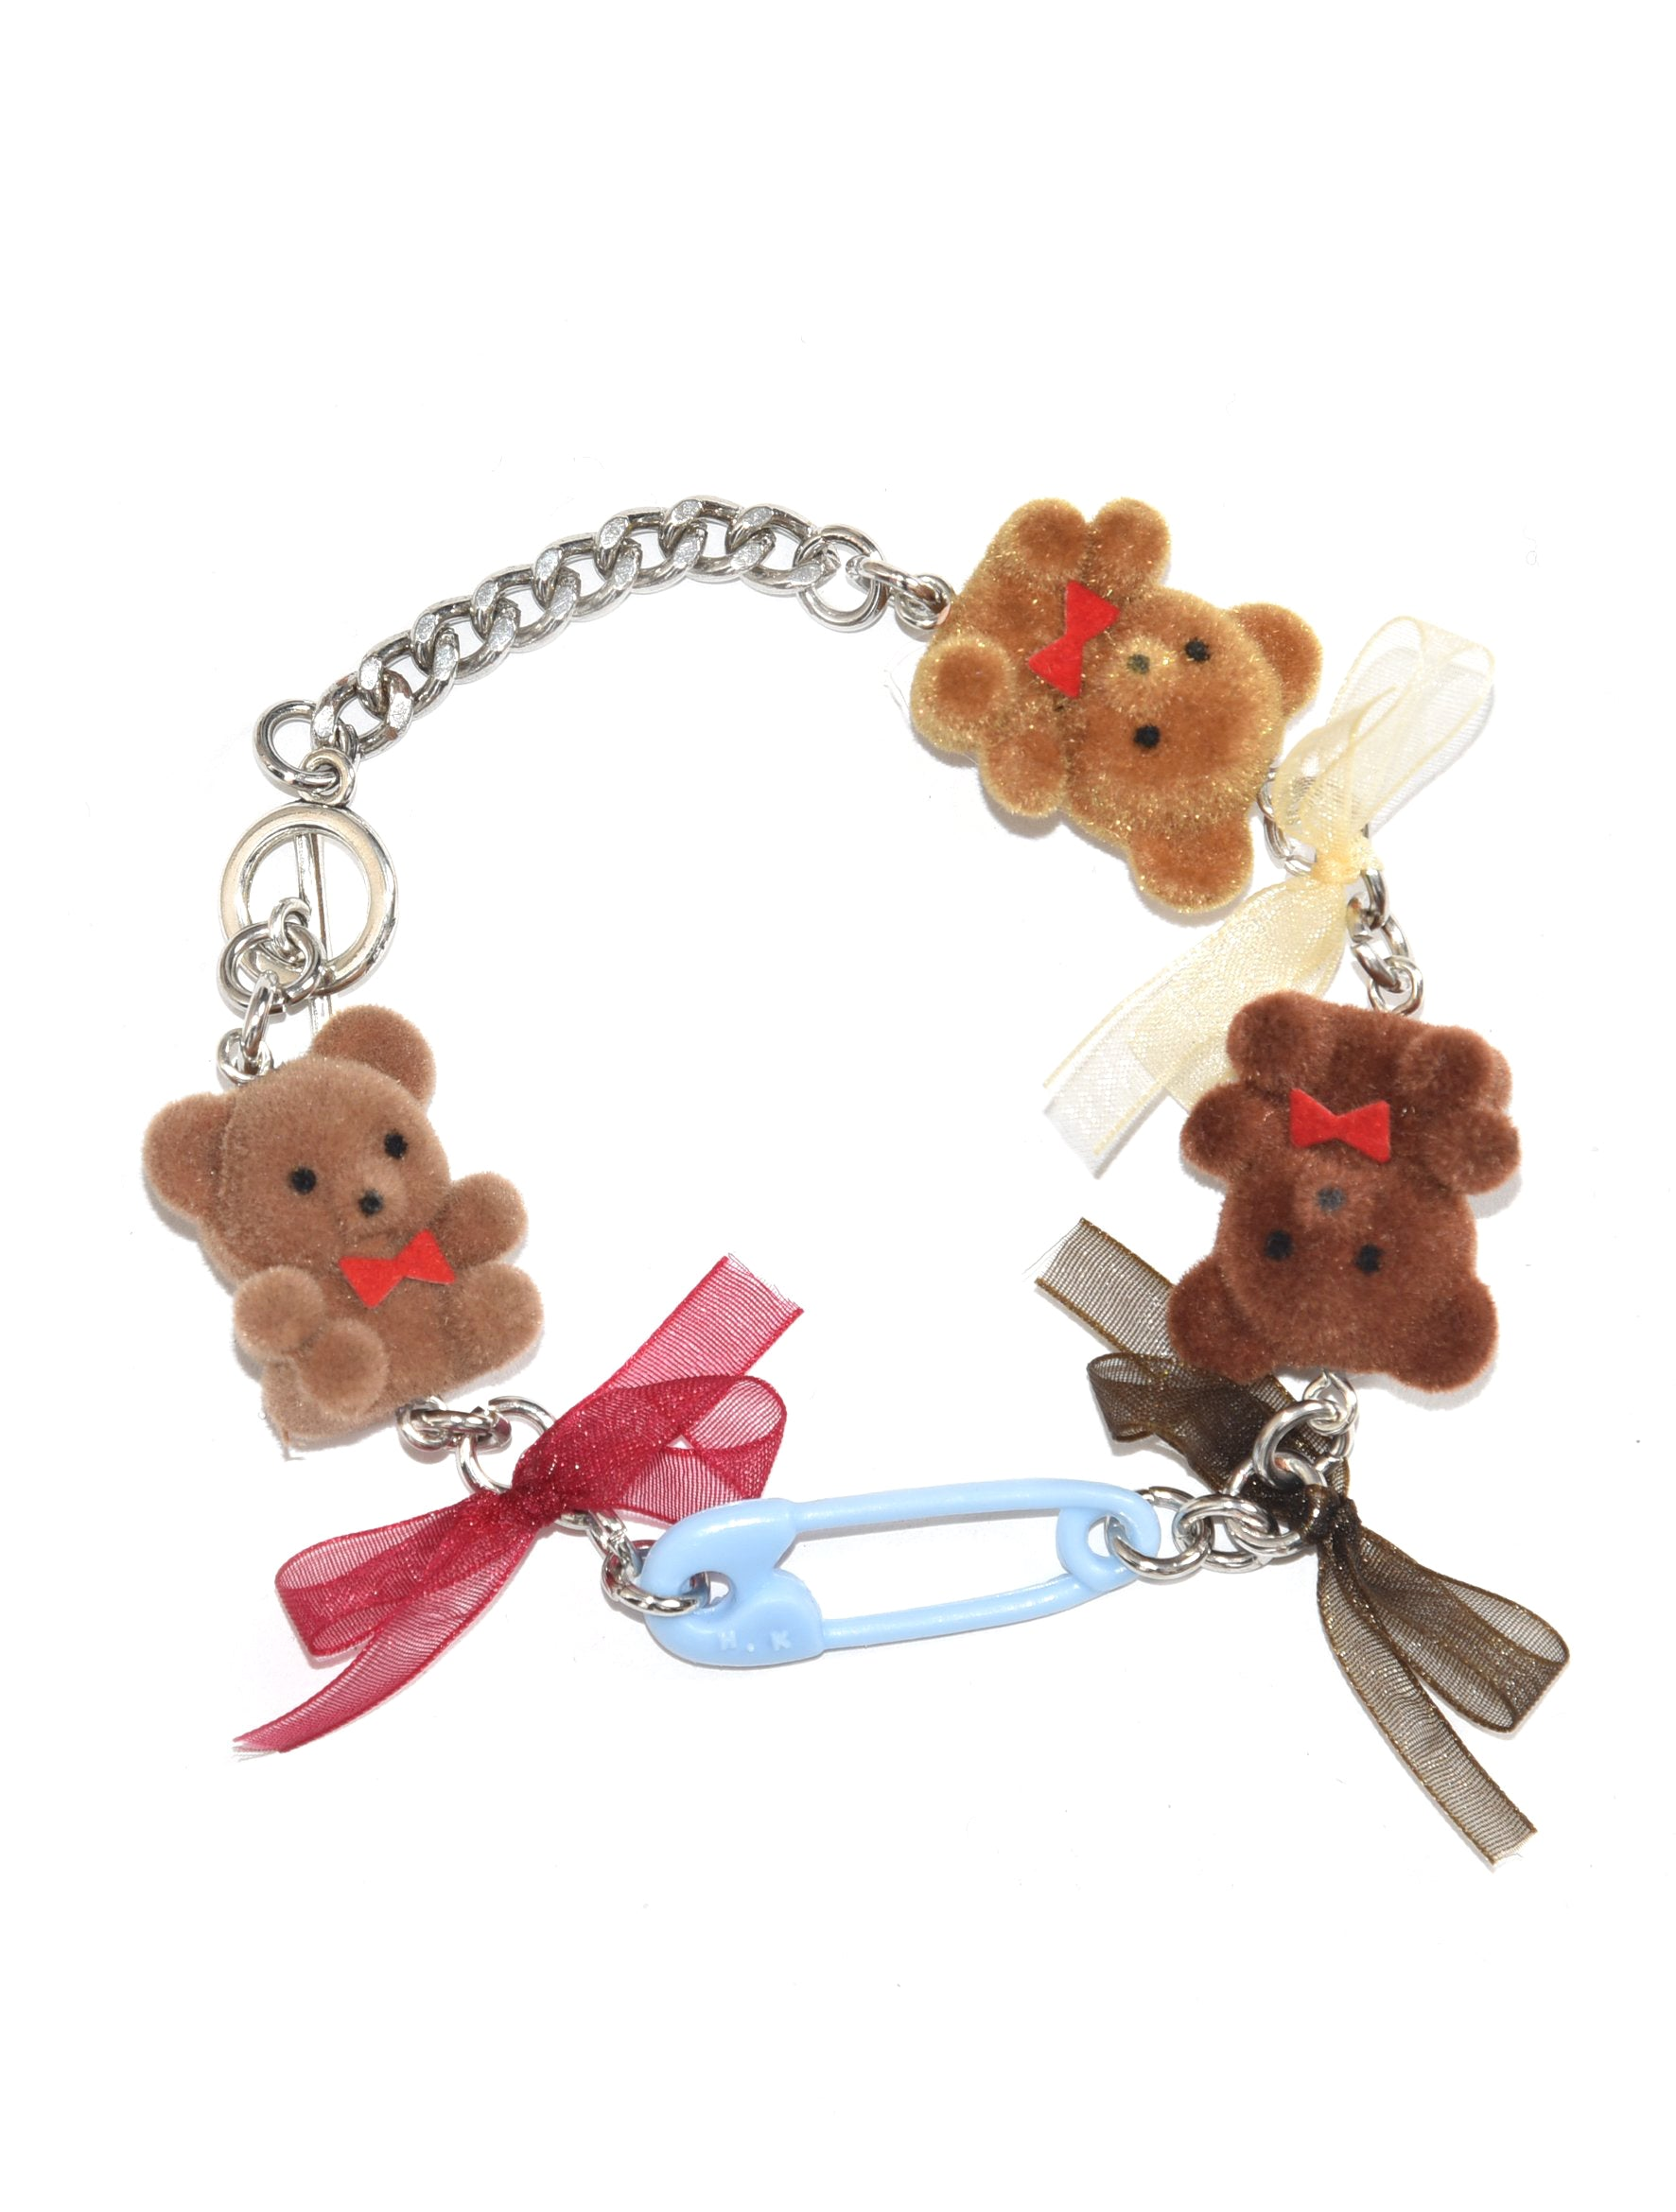 Neith Nyer Teddy Bear Braclet